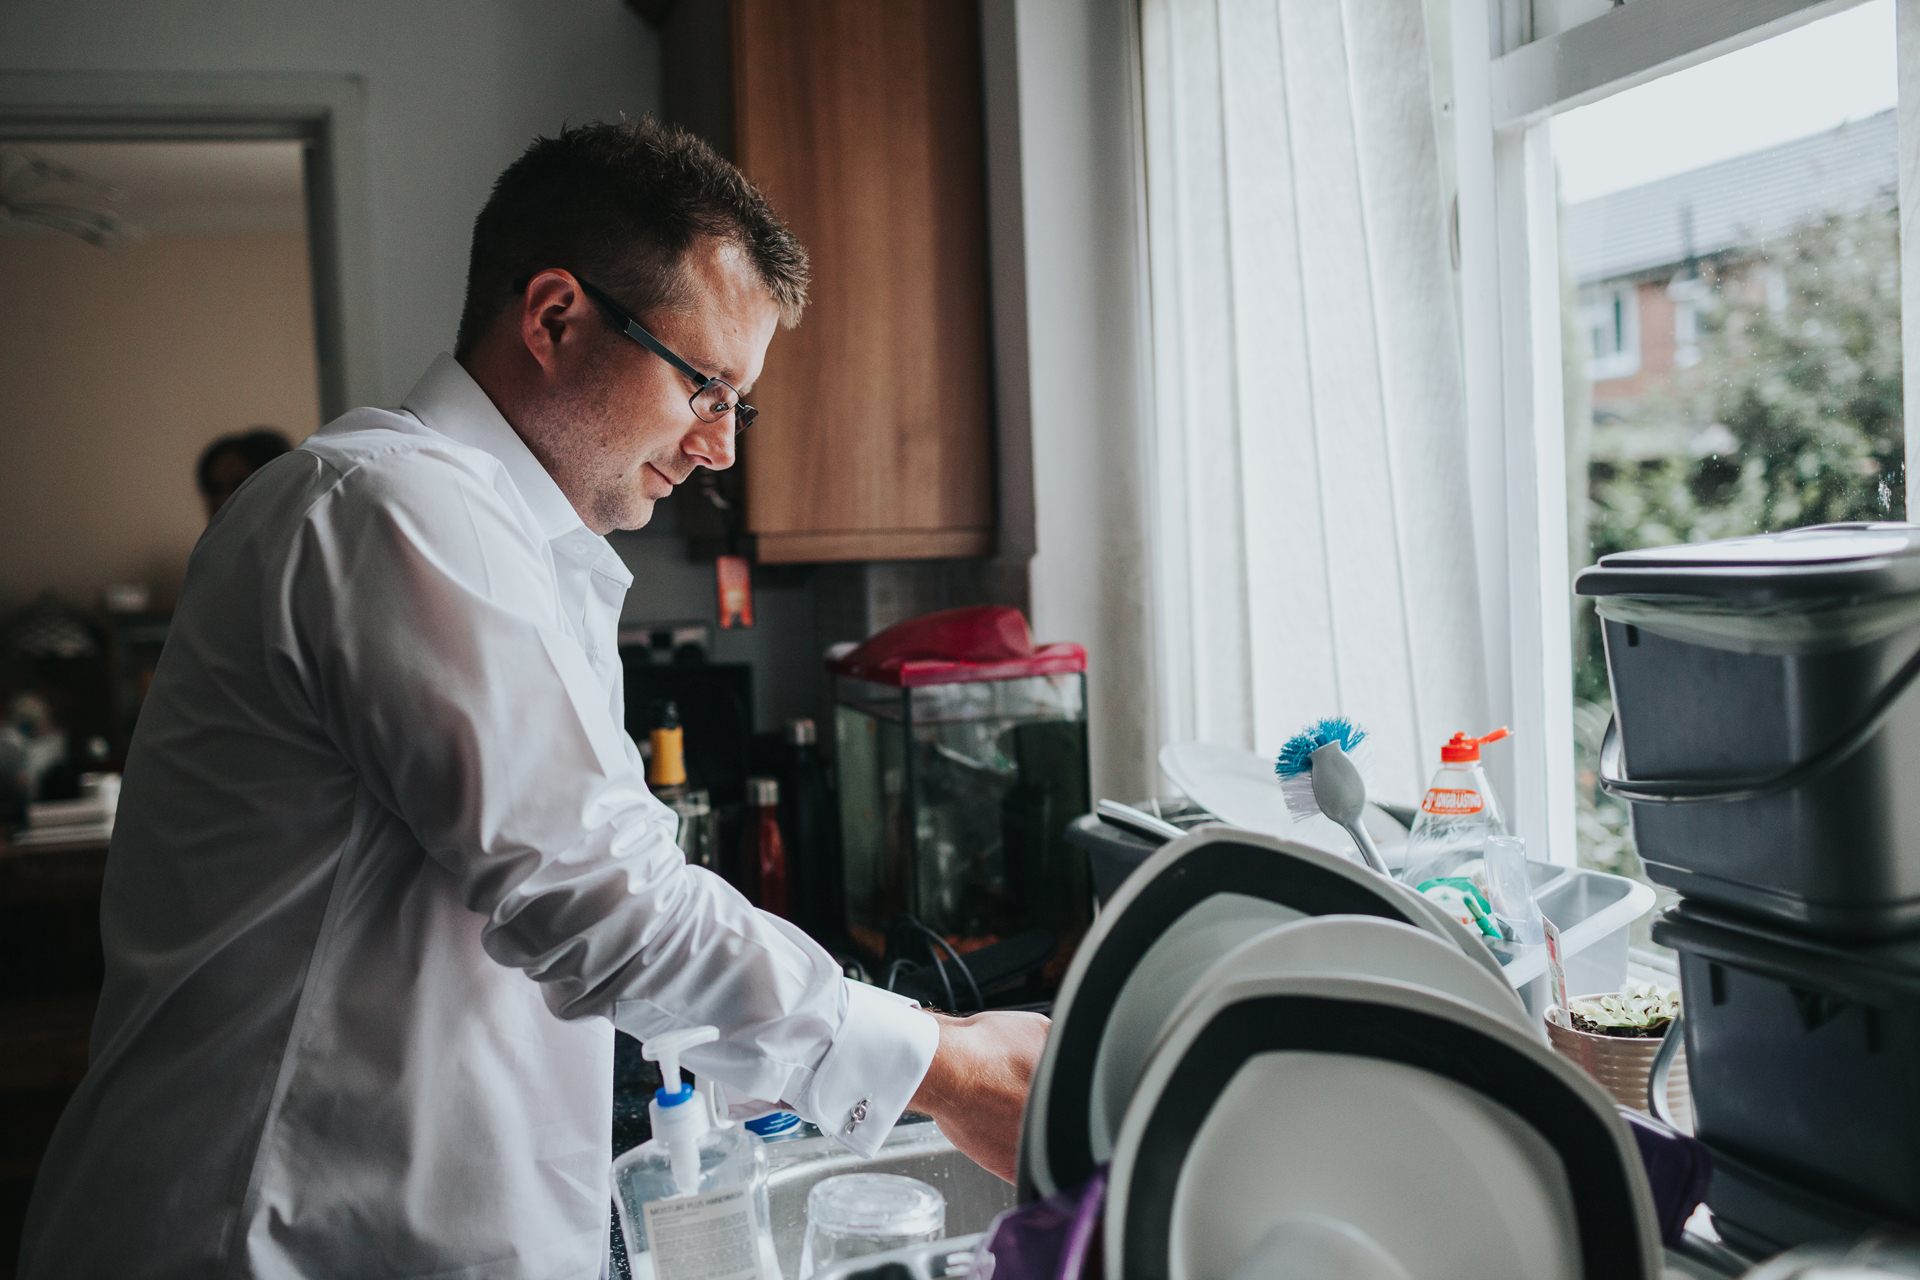 Best man doing the dishes.